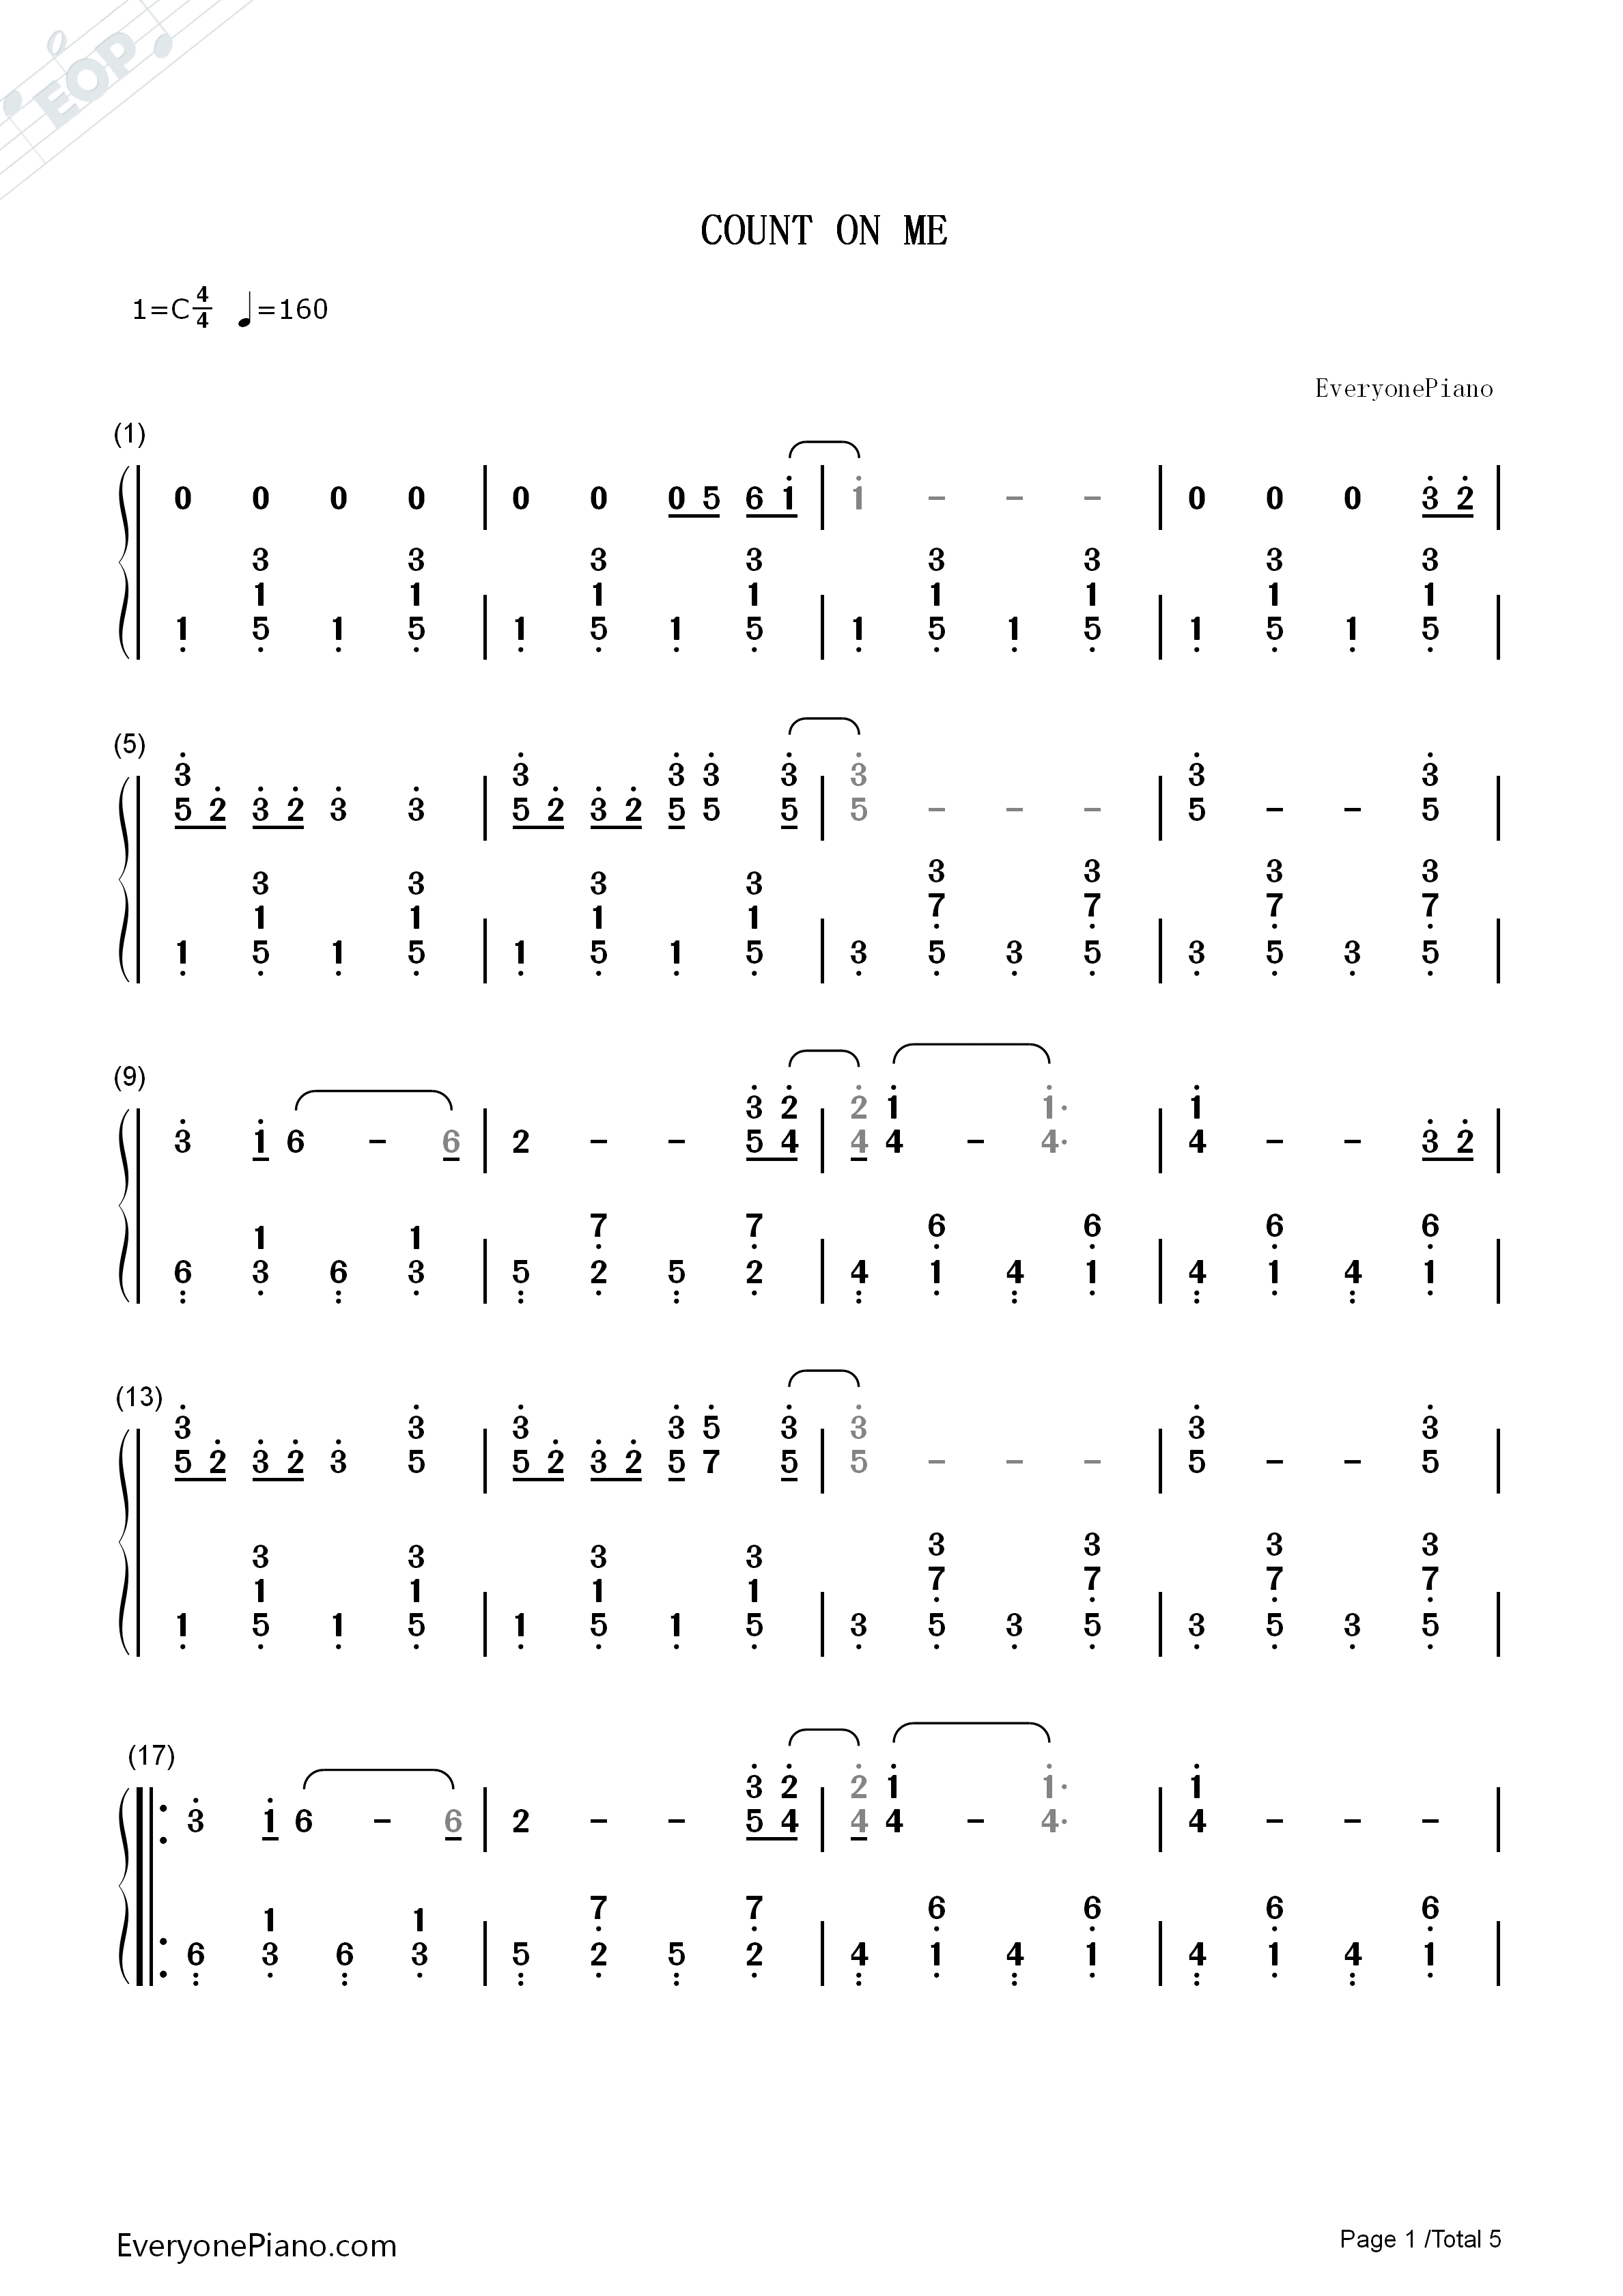 Count on me bruno mars numbered musical notation preview 1 free listen now print sheet count on me bruno mars numbered musical notation preview 1 hexwebz Image collections